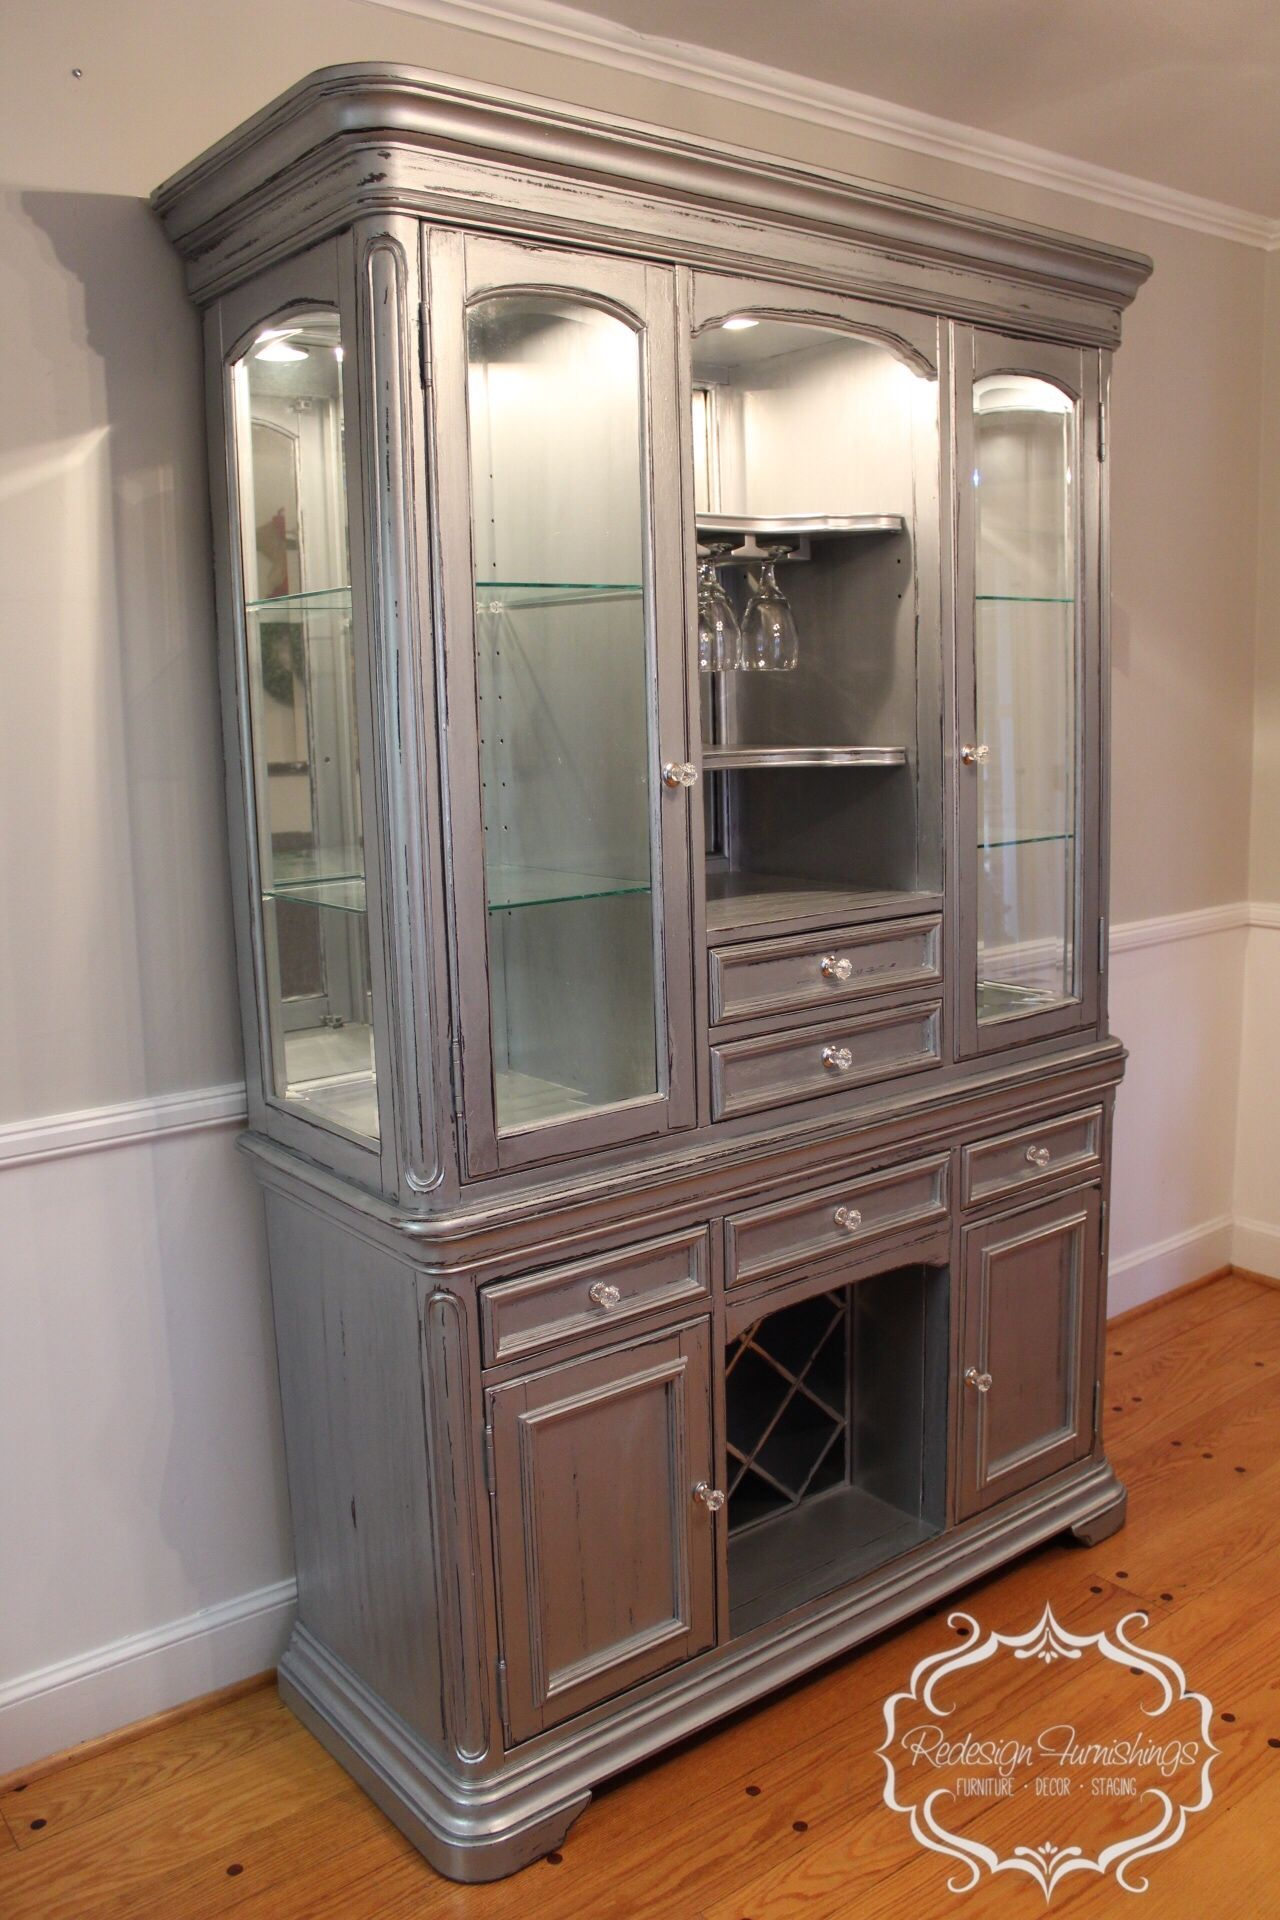 High Quality Silver China Cabinet Bar Wine Cabinet Distressed Rustic Chic